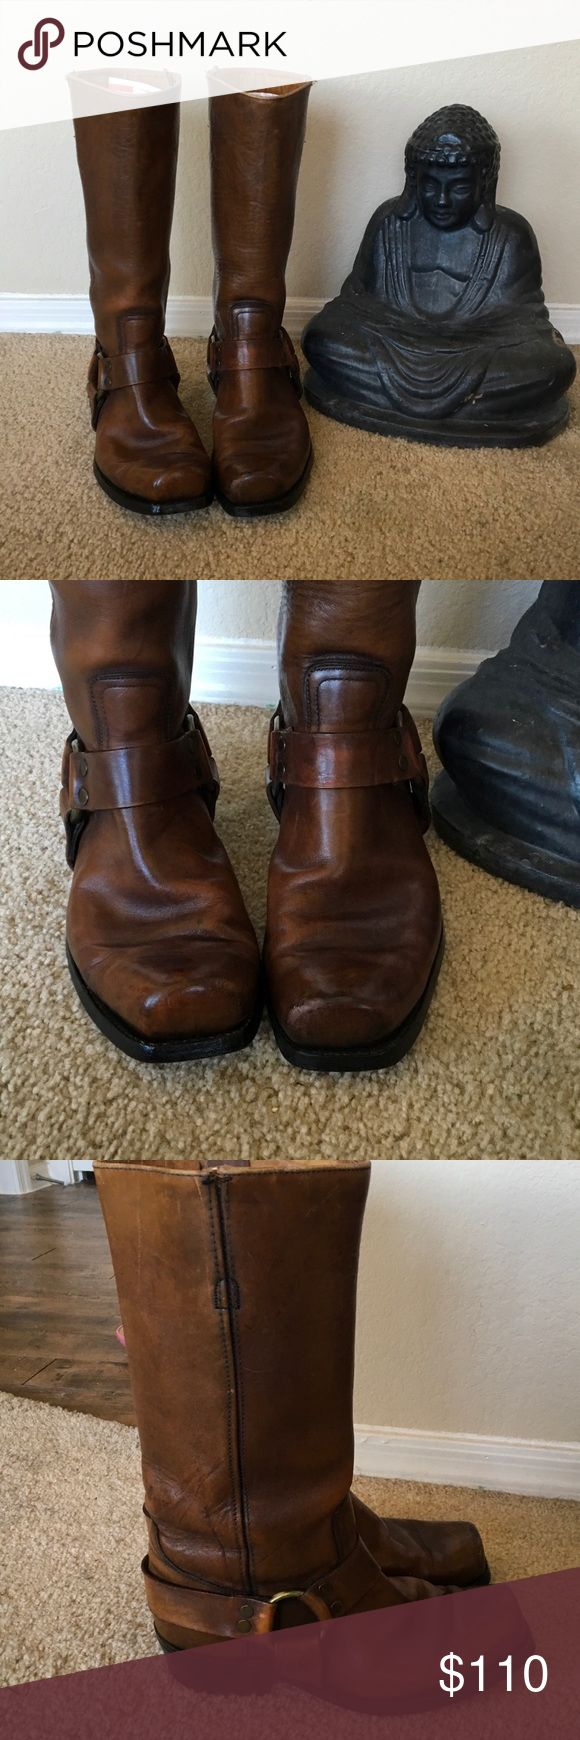 FRYE Men's Classic Saddle Brown BOOT sz. 9D PRe-owned tall square toed leather saddle brown men's BOOTS in very good wearable condition.  Leather  has a great patina that comes from wear & caring for them w/leather balm . Heels like NEW,SIZE 9D. Stirrups inside.Brass hardware Just polished BOOTS Frye Shoes Boots